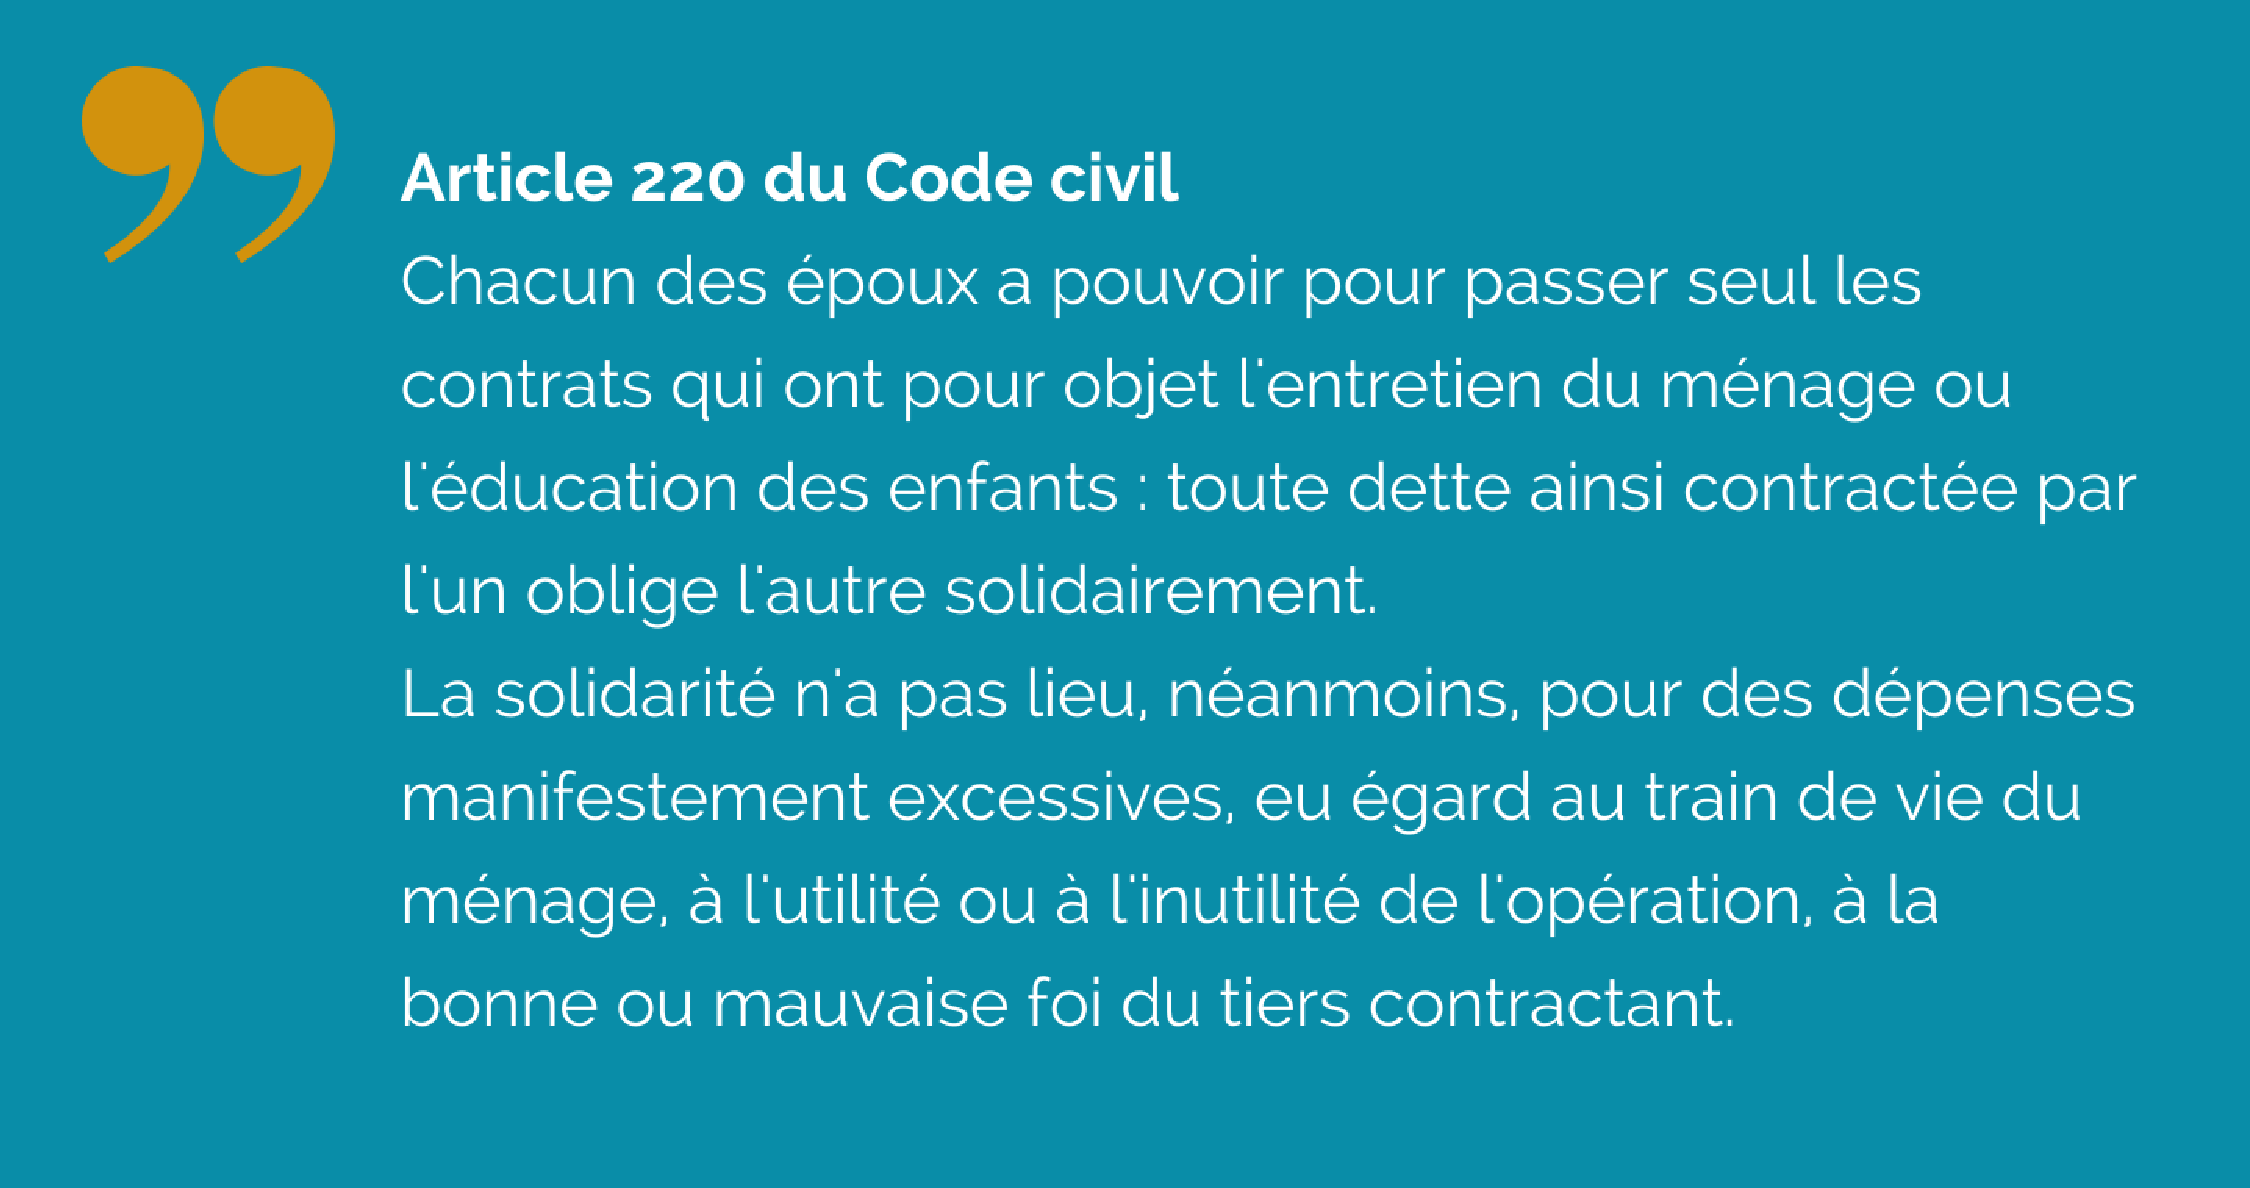 Article 220 du Code civil